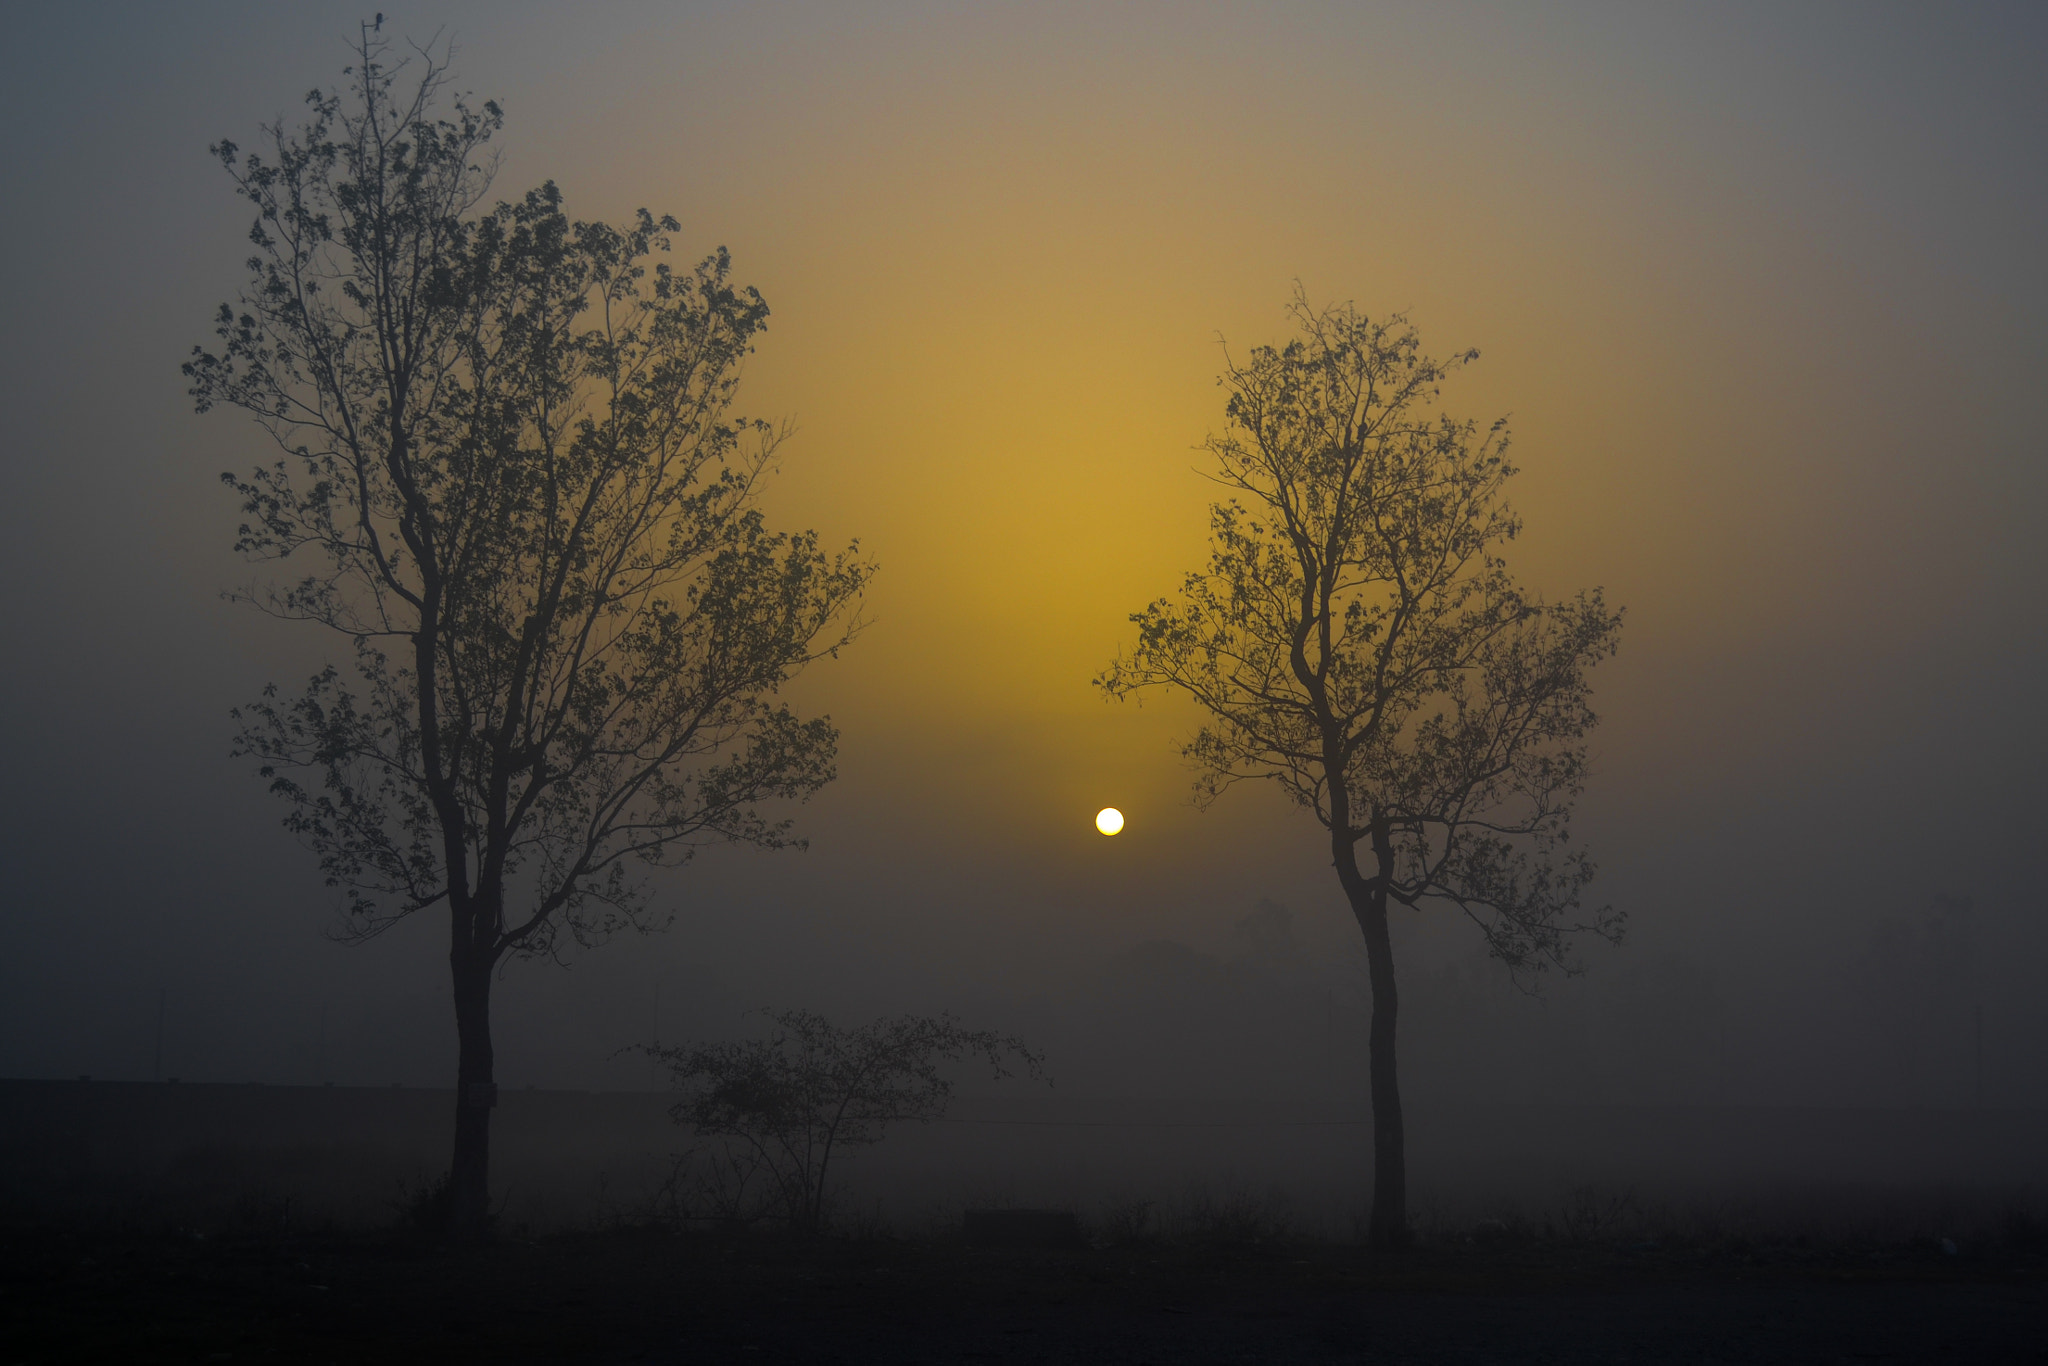 Photograph Untitled by Nischal Mishra on 500px